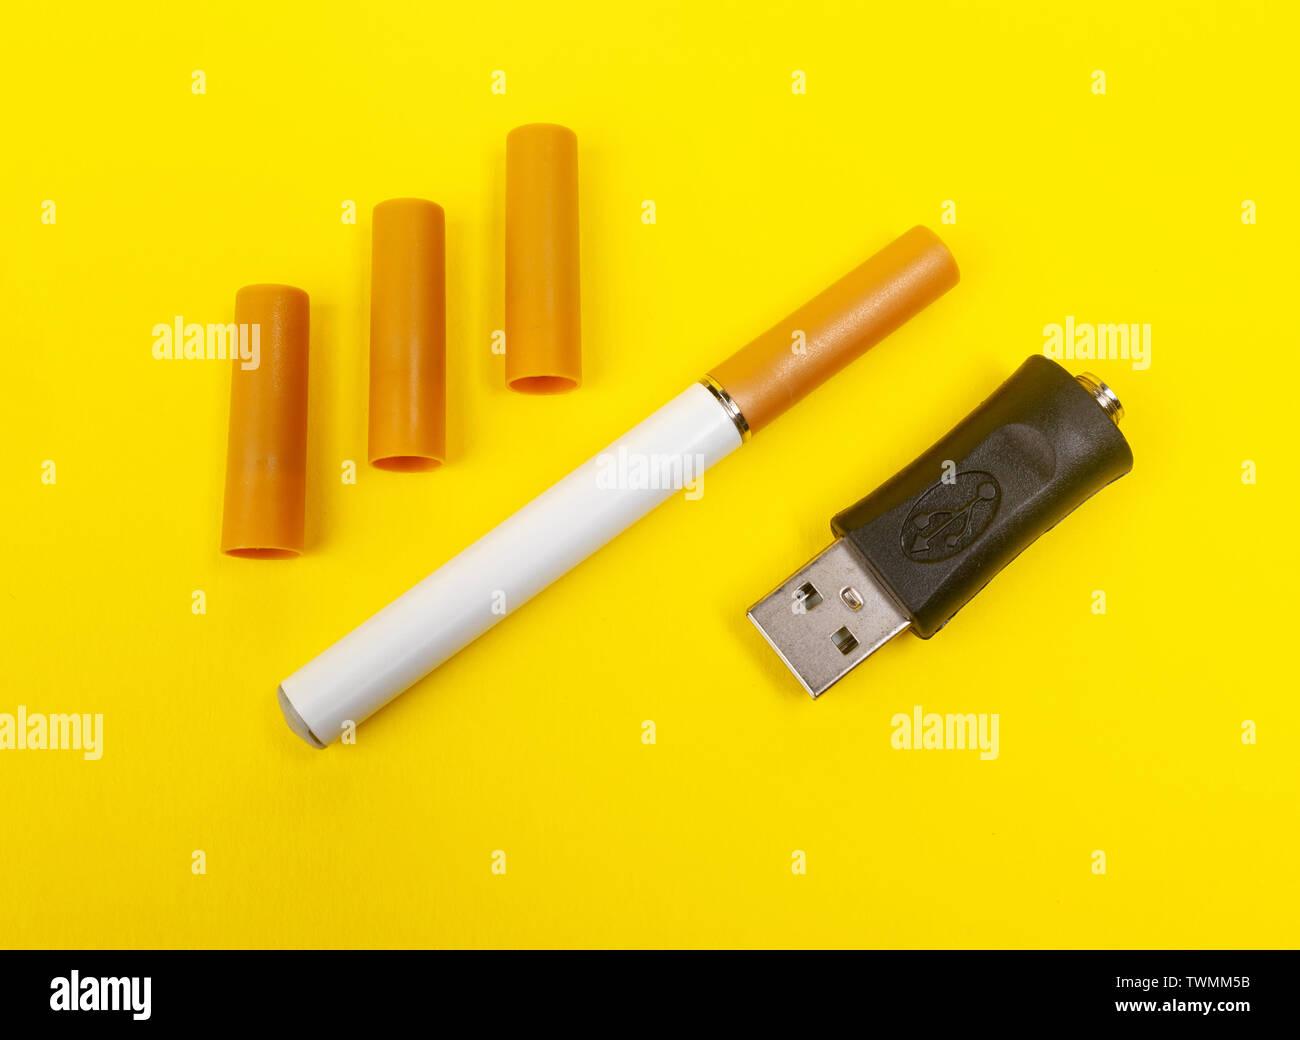 Closeup photo of an electronic cigarette on yellow background. - Stock Image